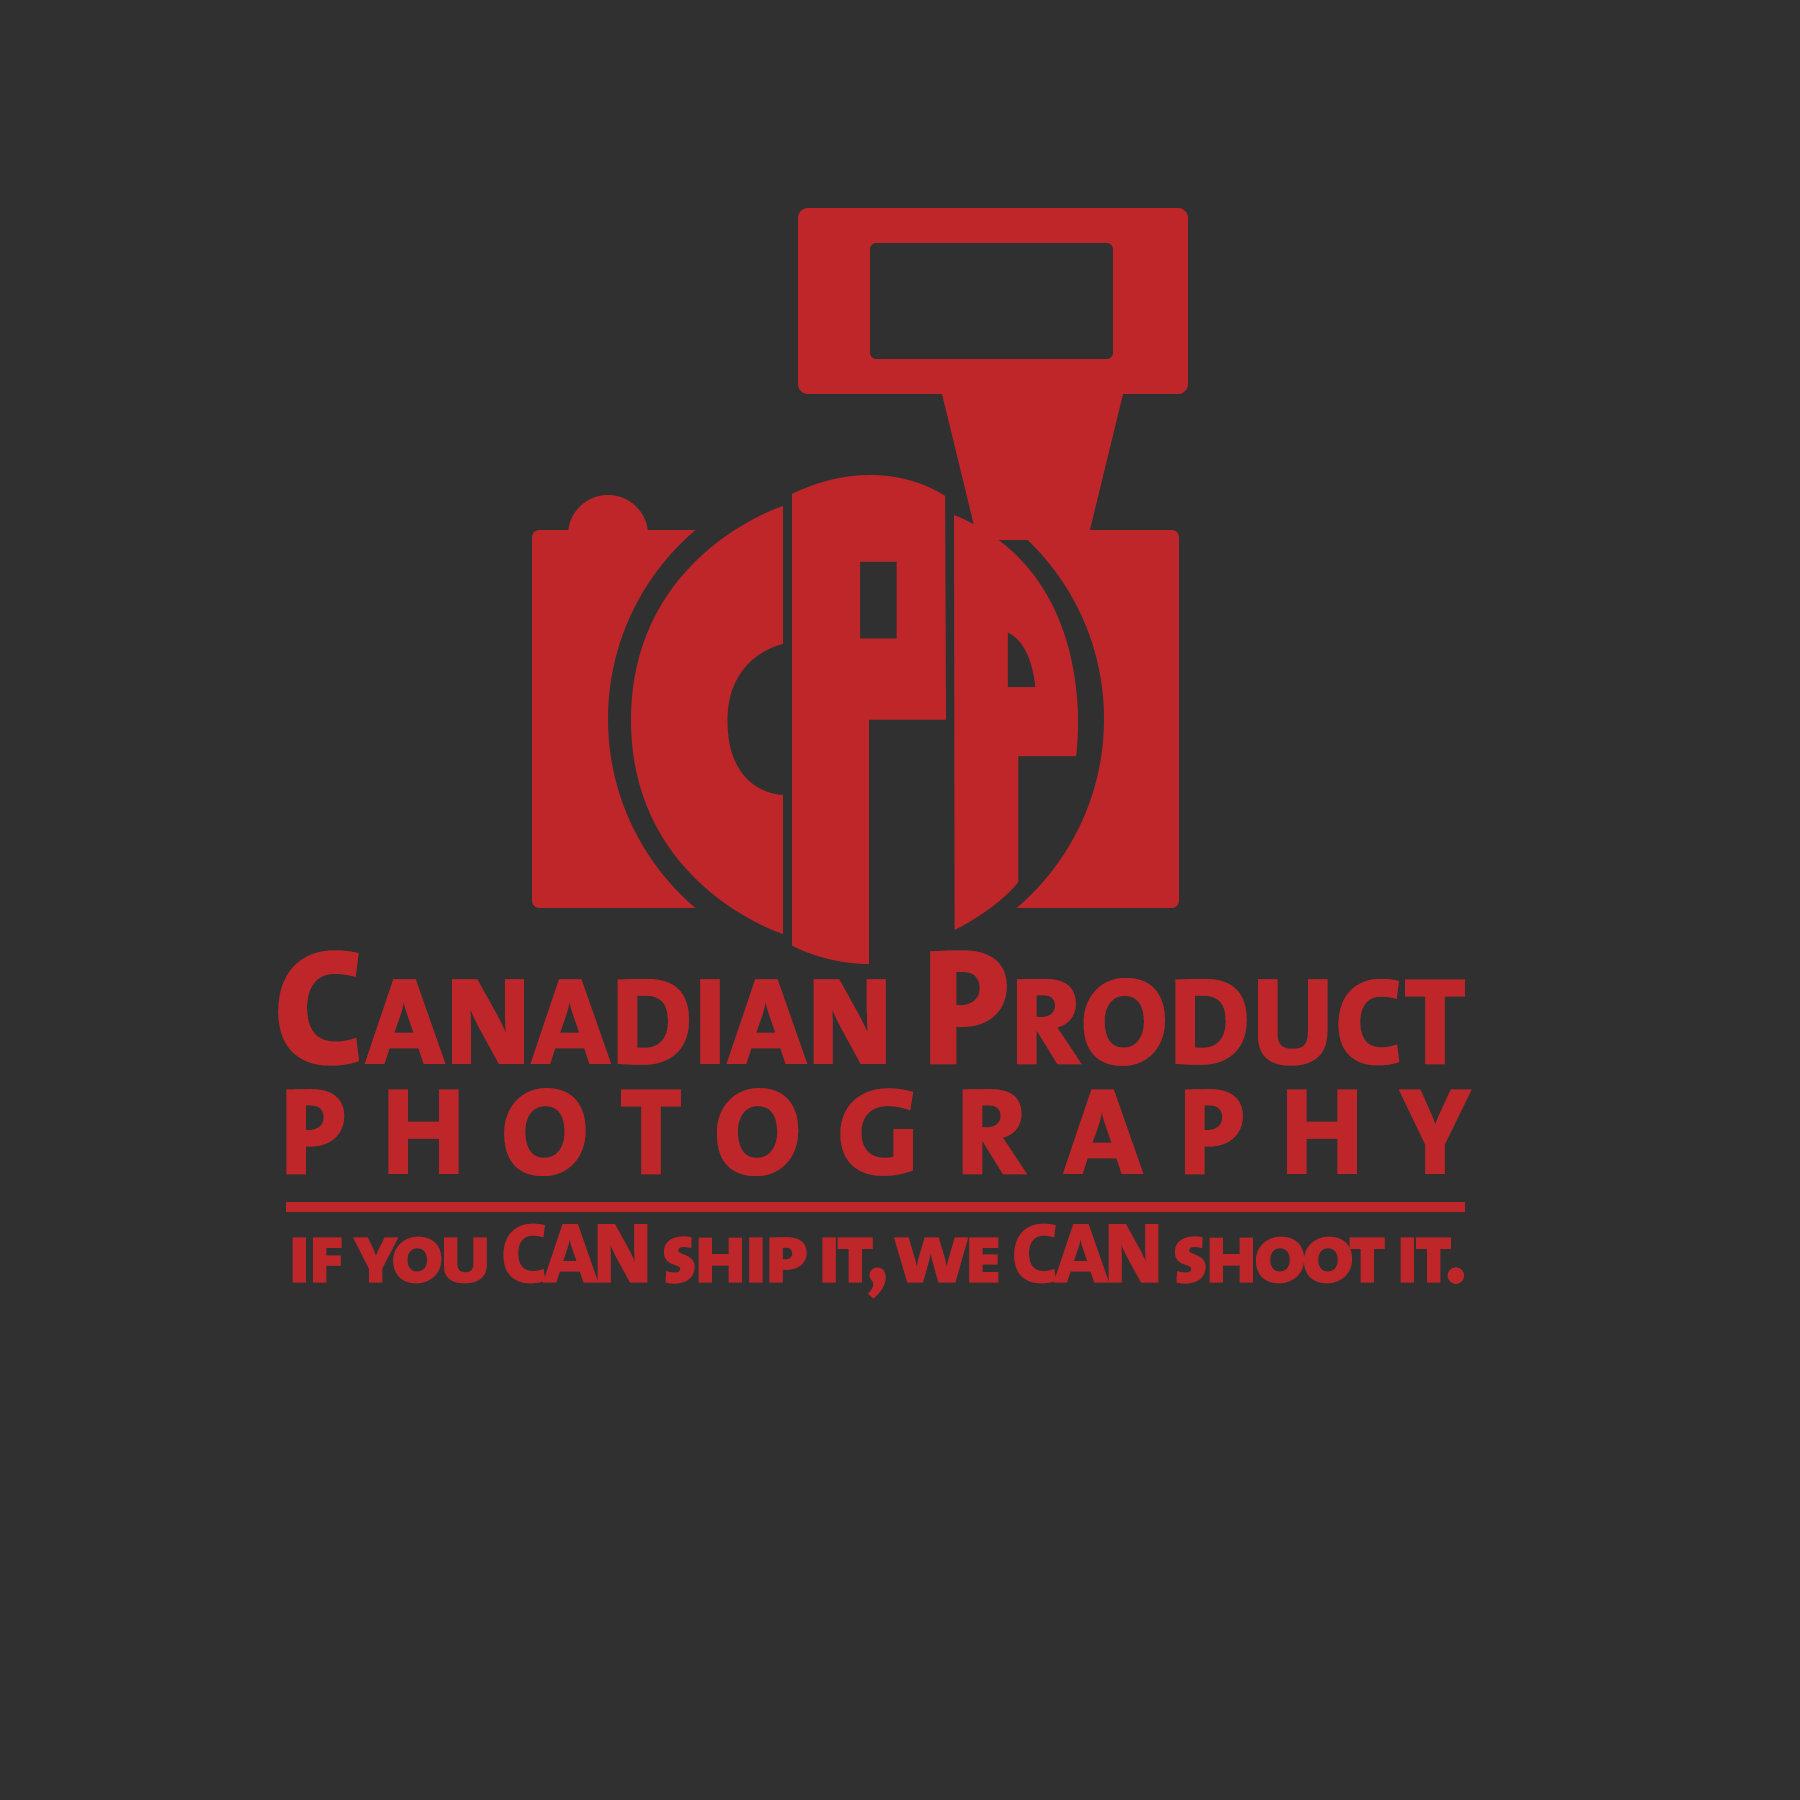 Logo Design by Lemuel Arvin Tanzo - Entry No. 12 in the Logo Design Contest Artistic Logo Design for Canadian Product Photography.